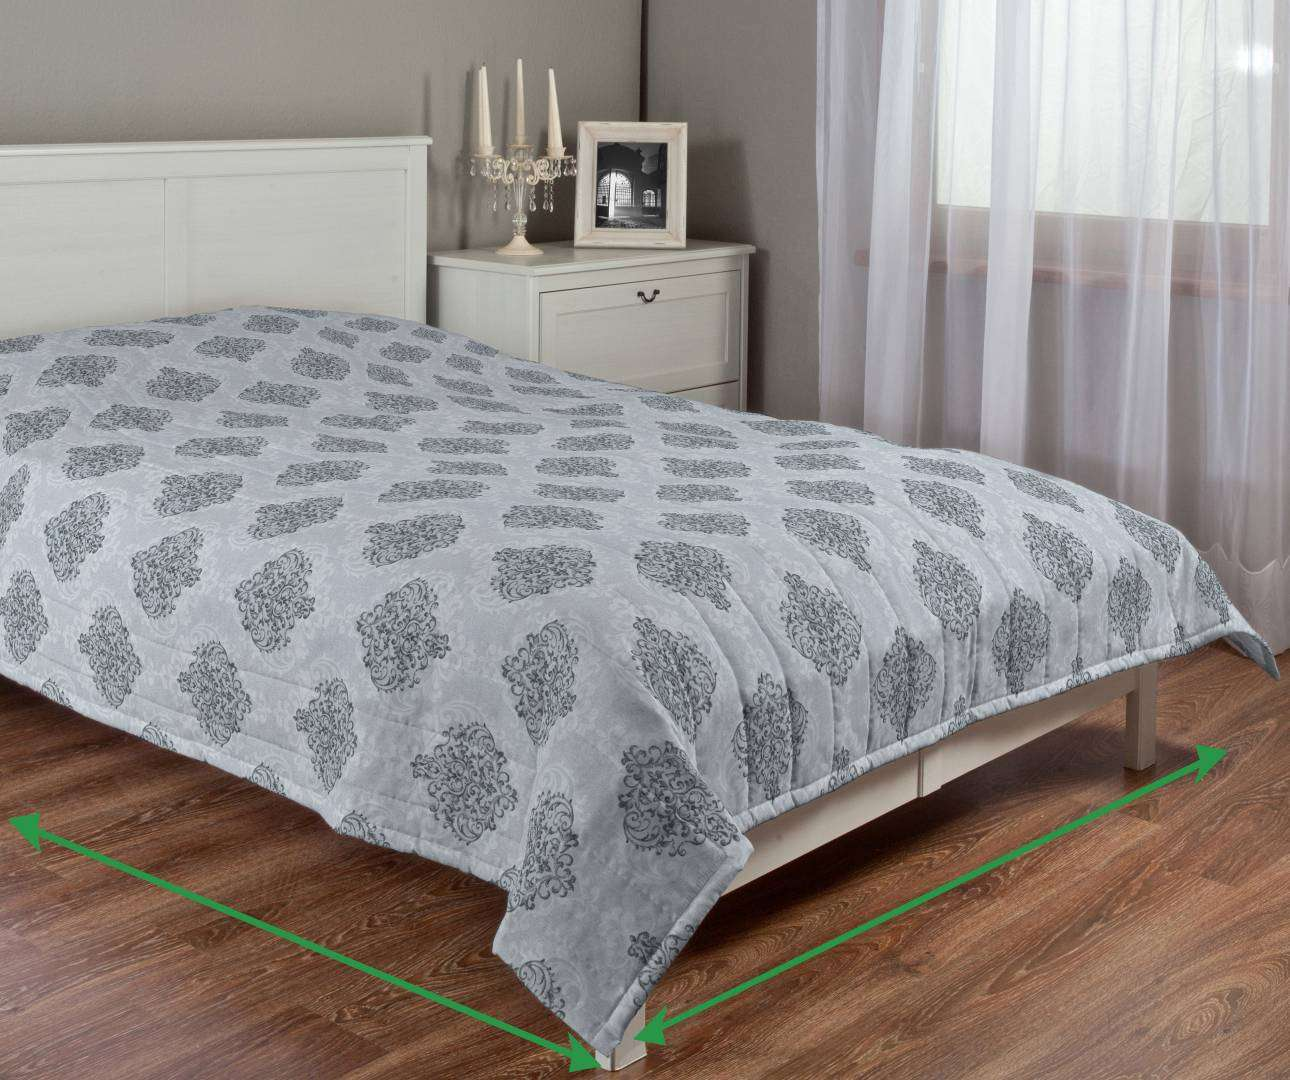 Quilted throw (vertical quilt pattern) in collection Rustica, fabric: 138-16